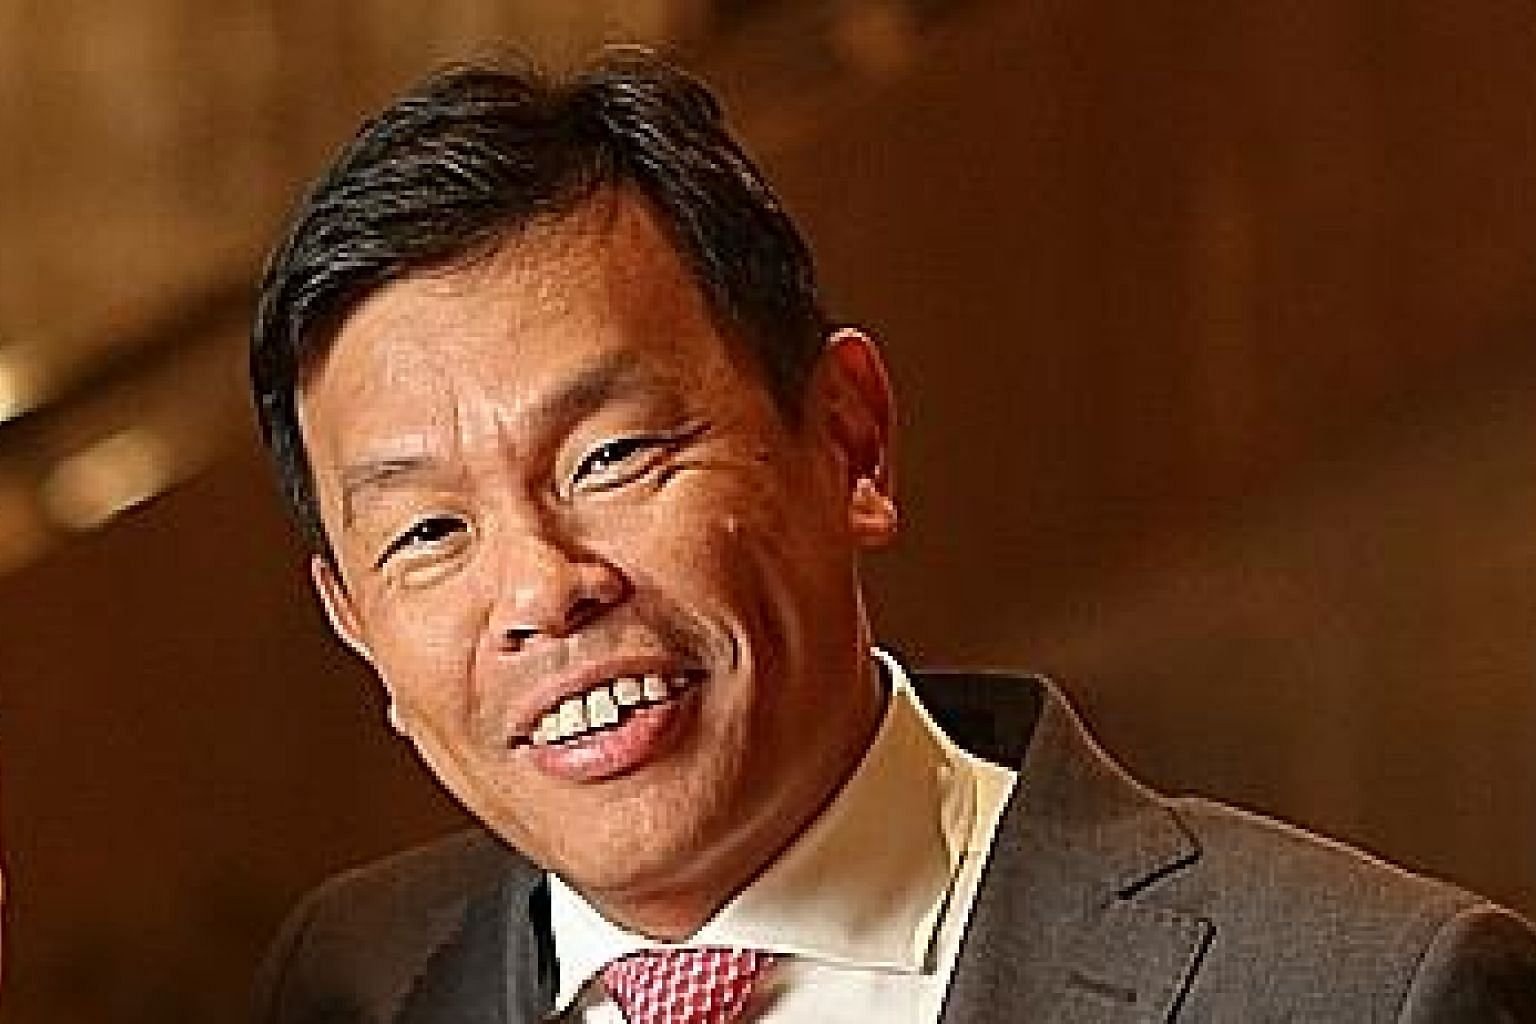 Mr Terence Ho Wee San is the first Nominated MP from the arts field who is a formally trained musician.